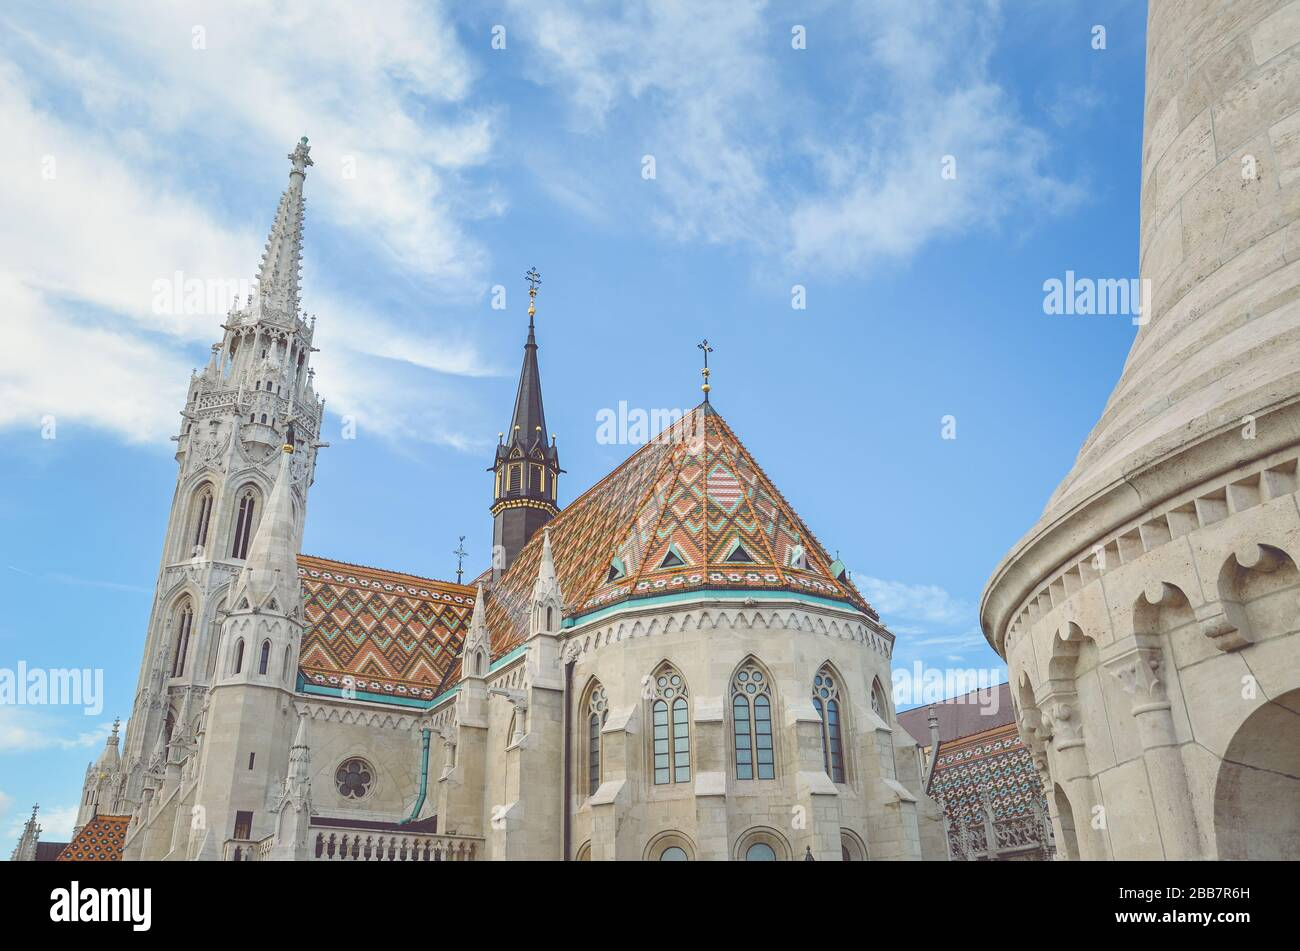 The spire of the famous Matthias Church in Budapest, Hungary. Roman Catholic church built in the Gothic style. Orange colored tile roof. Blue sky and white clouds above. Horizontal photo with filter. Stock Photo